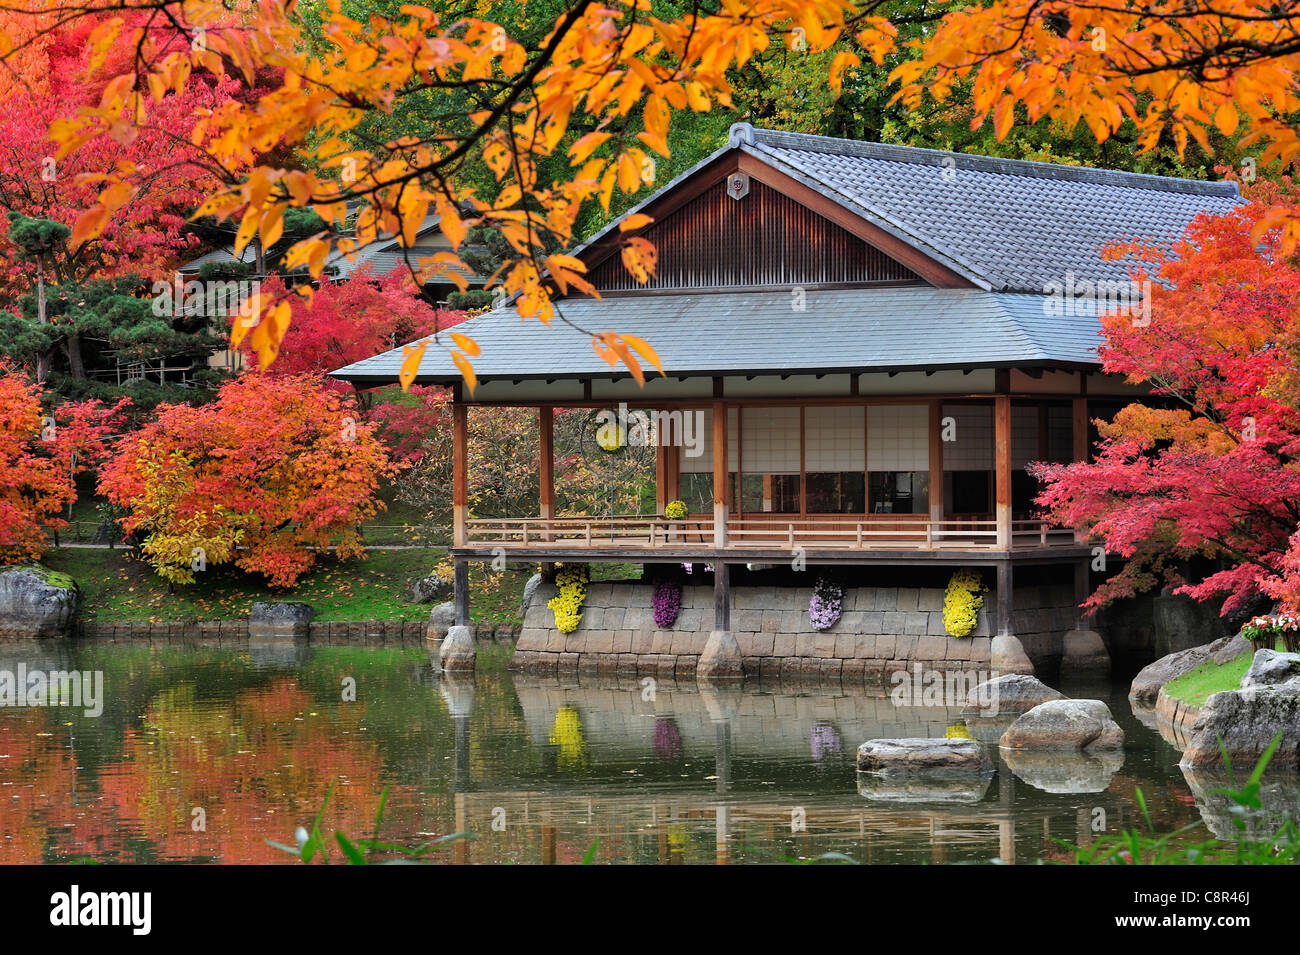 Traditional japanese gardens - Stock Photo Traditional Pavilion Tea House In Japanese Garden With Tree Foliage In Red Autumn Colours In The City Hasselt Belgium